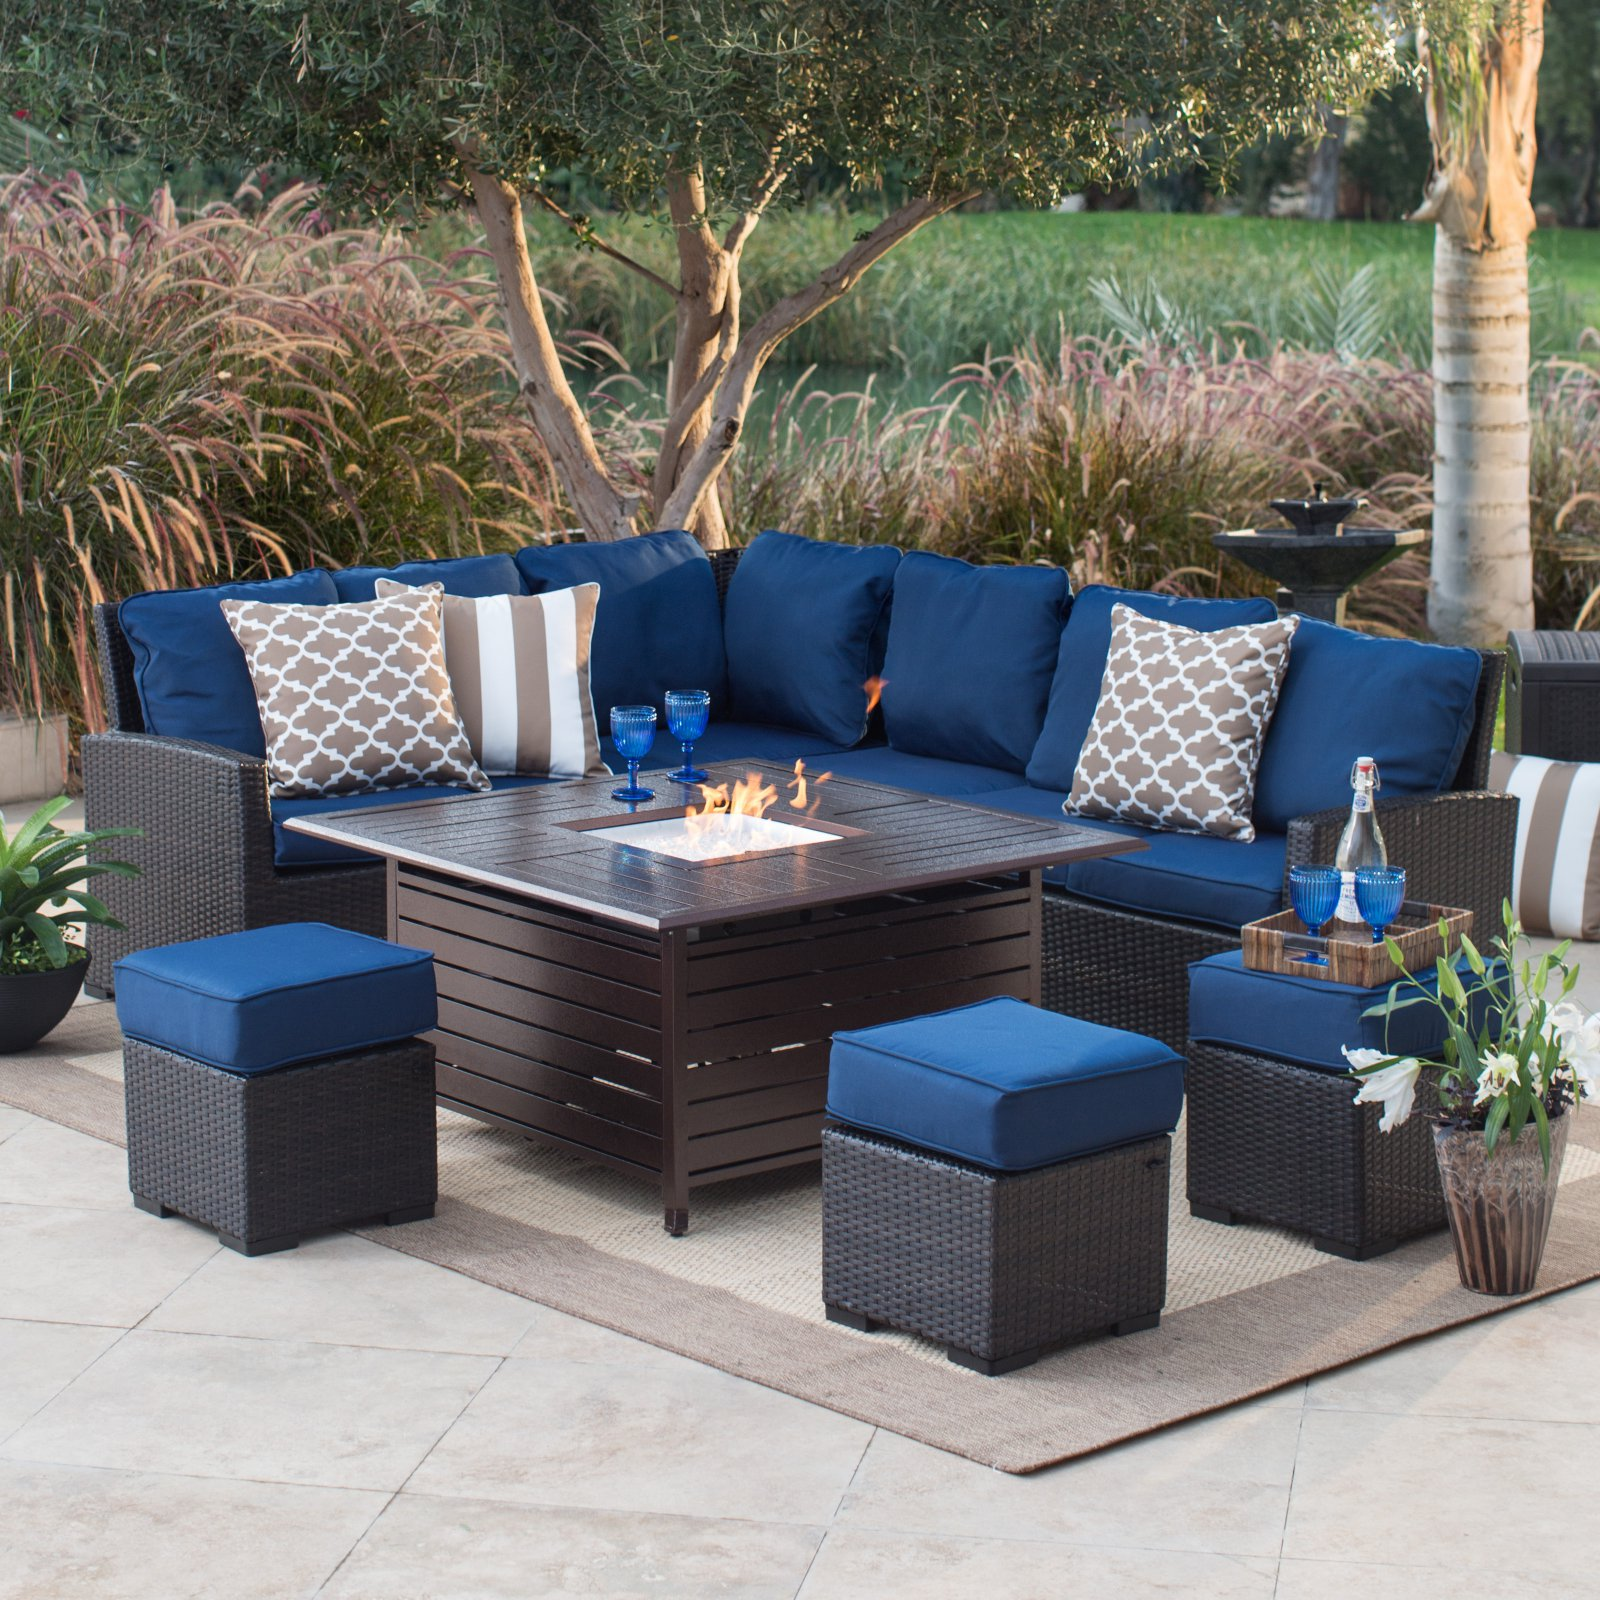 Belham Living Monticello All-Weather Wicker Fire Pit Chat Set with Longmont Square